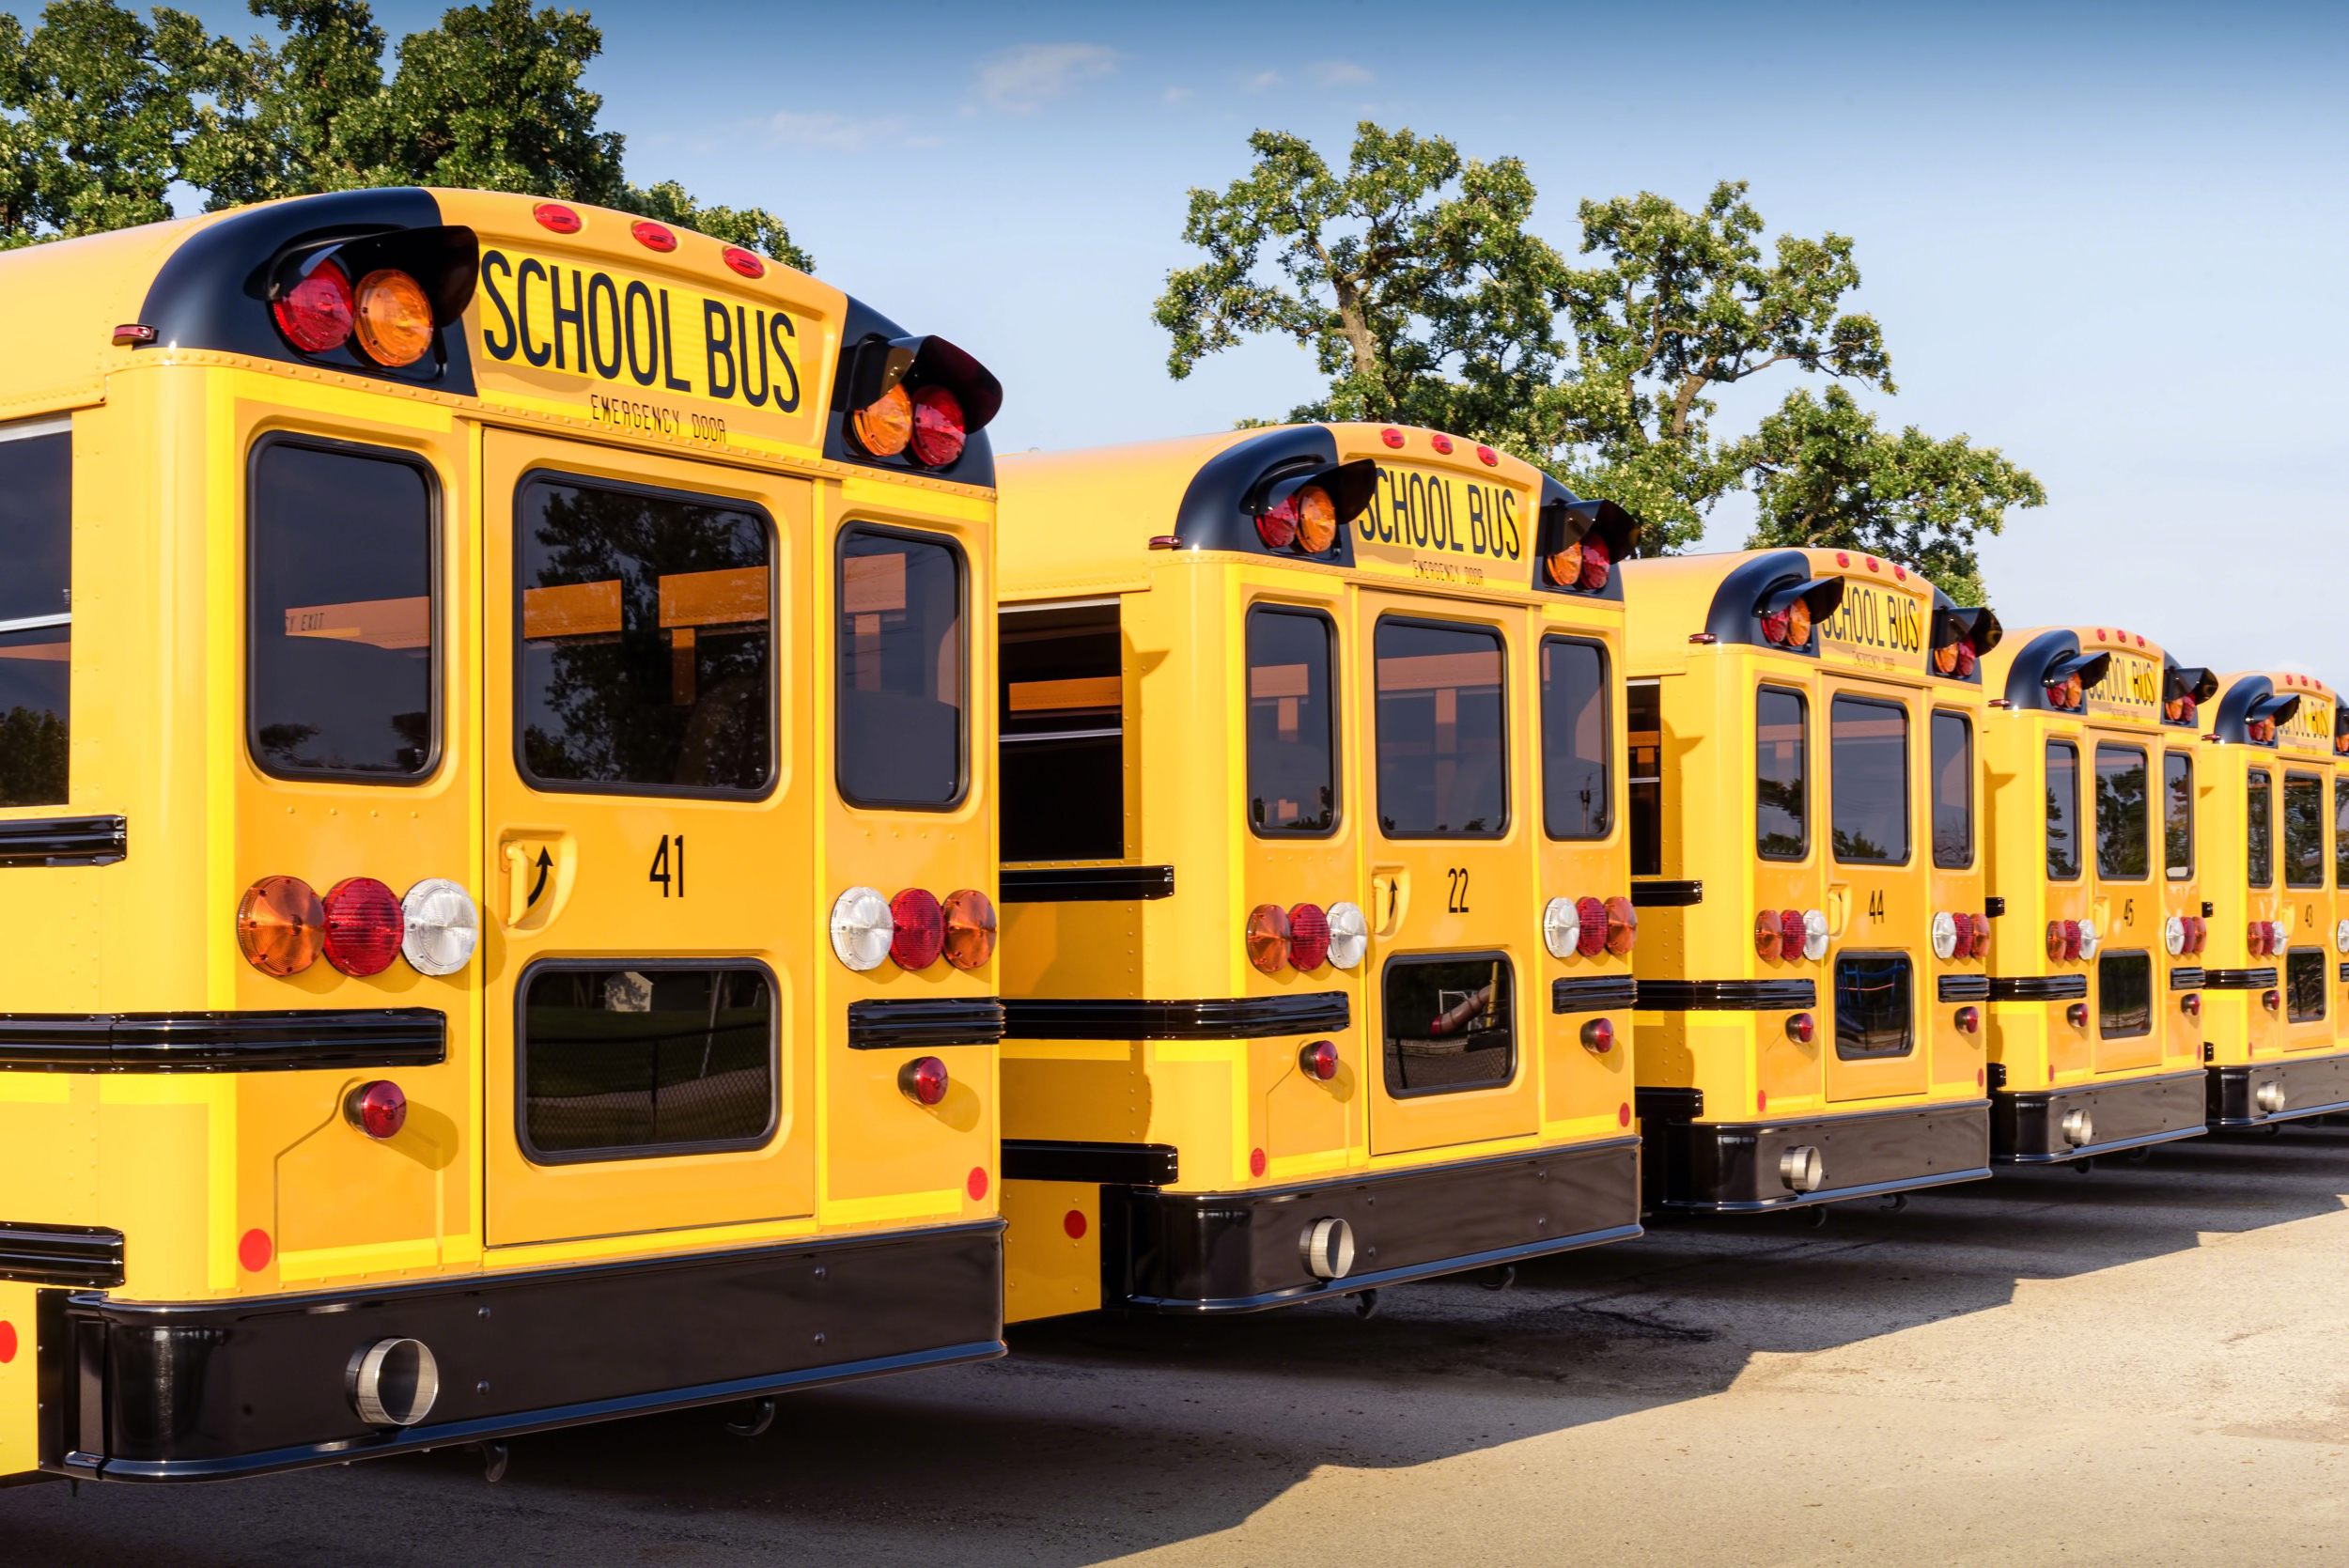 White girls, ages 10 and 11, accused of 'racist' assault on black girl on N.Y. school bus